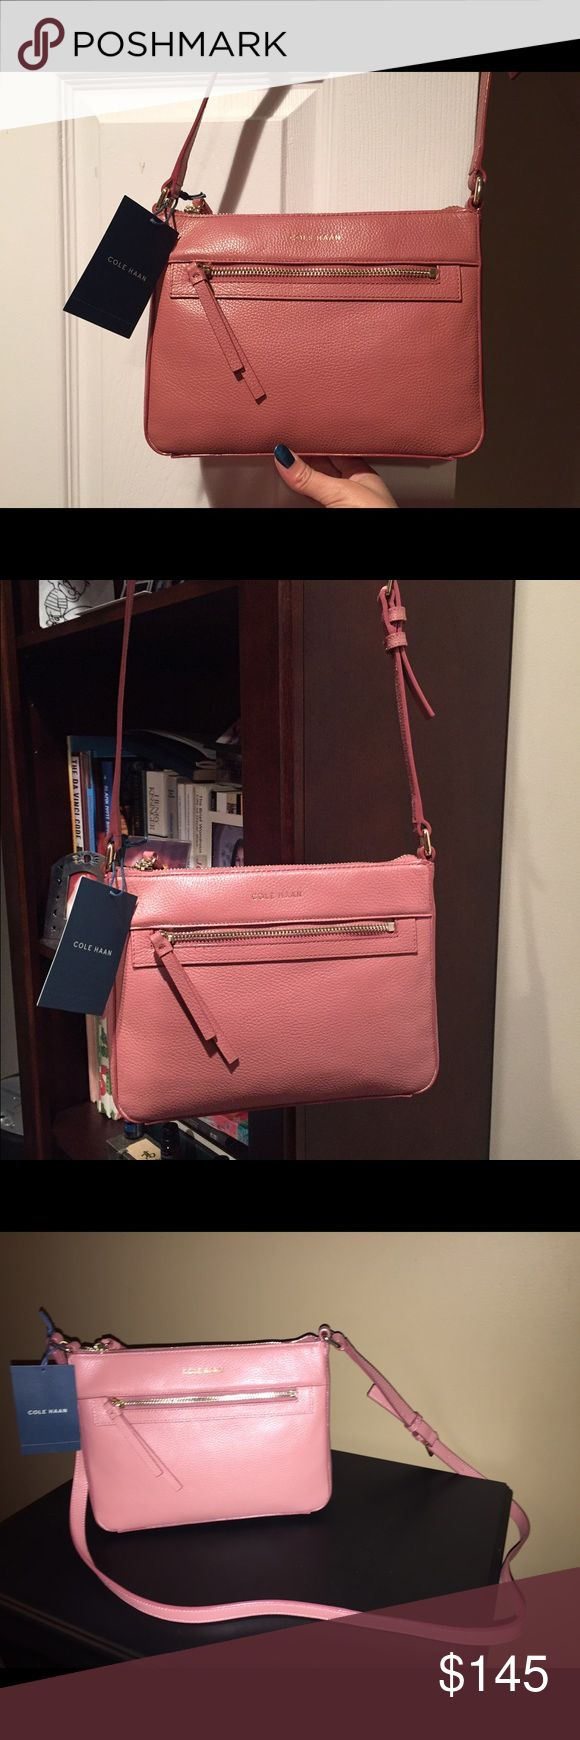 Cole Haan purse -- pretty pink! Perfect purse for the spring. Cole Haan cross body Rose color Cole Haan Bags Crossbody Bags